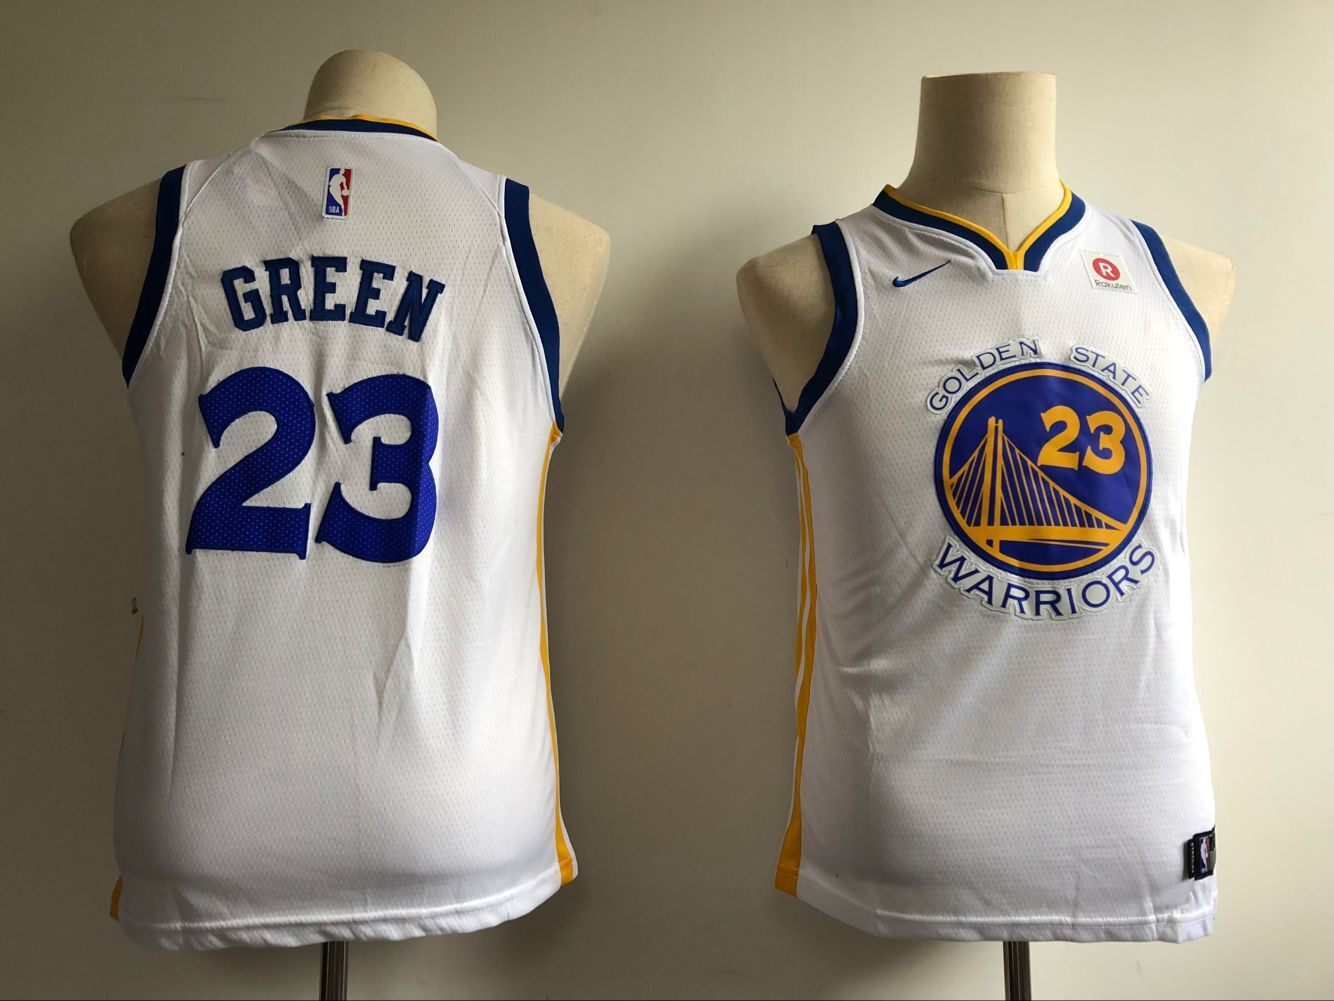 Youth Golden State Warriors 23 Green White Nike NBA Jerseys